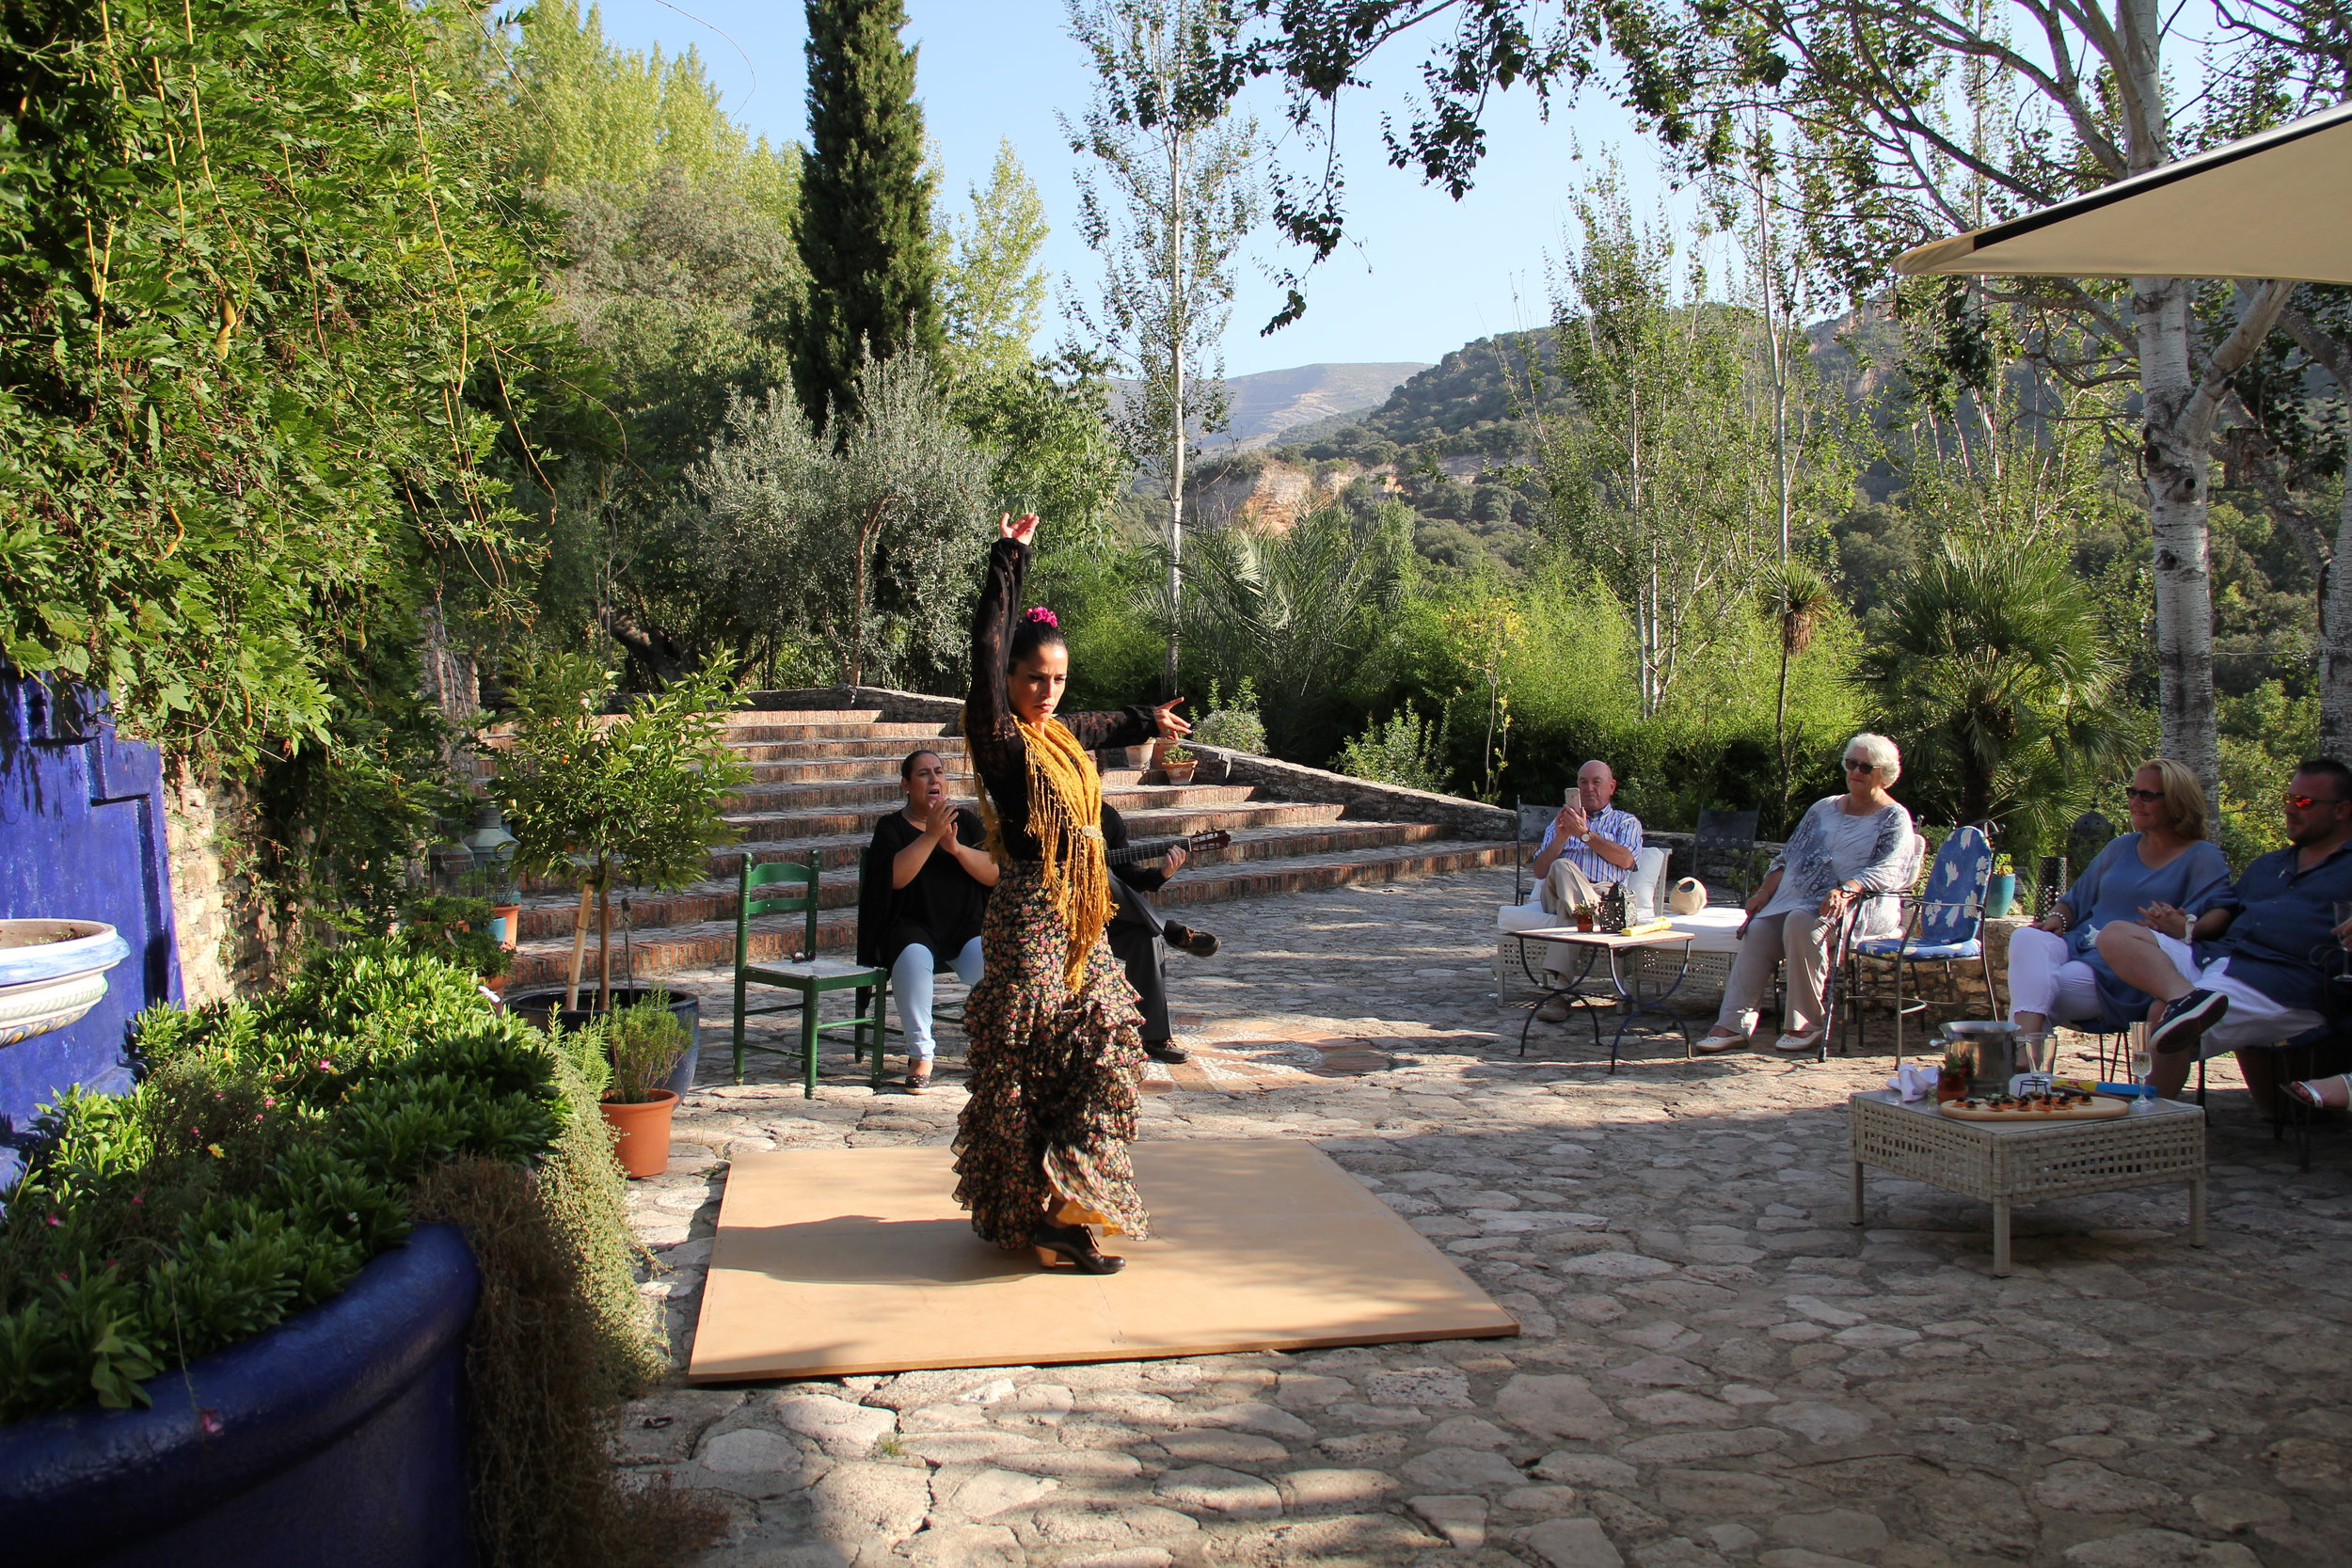 luxury_villa_rental_ronda_andalusia_spain:_flamenco